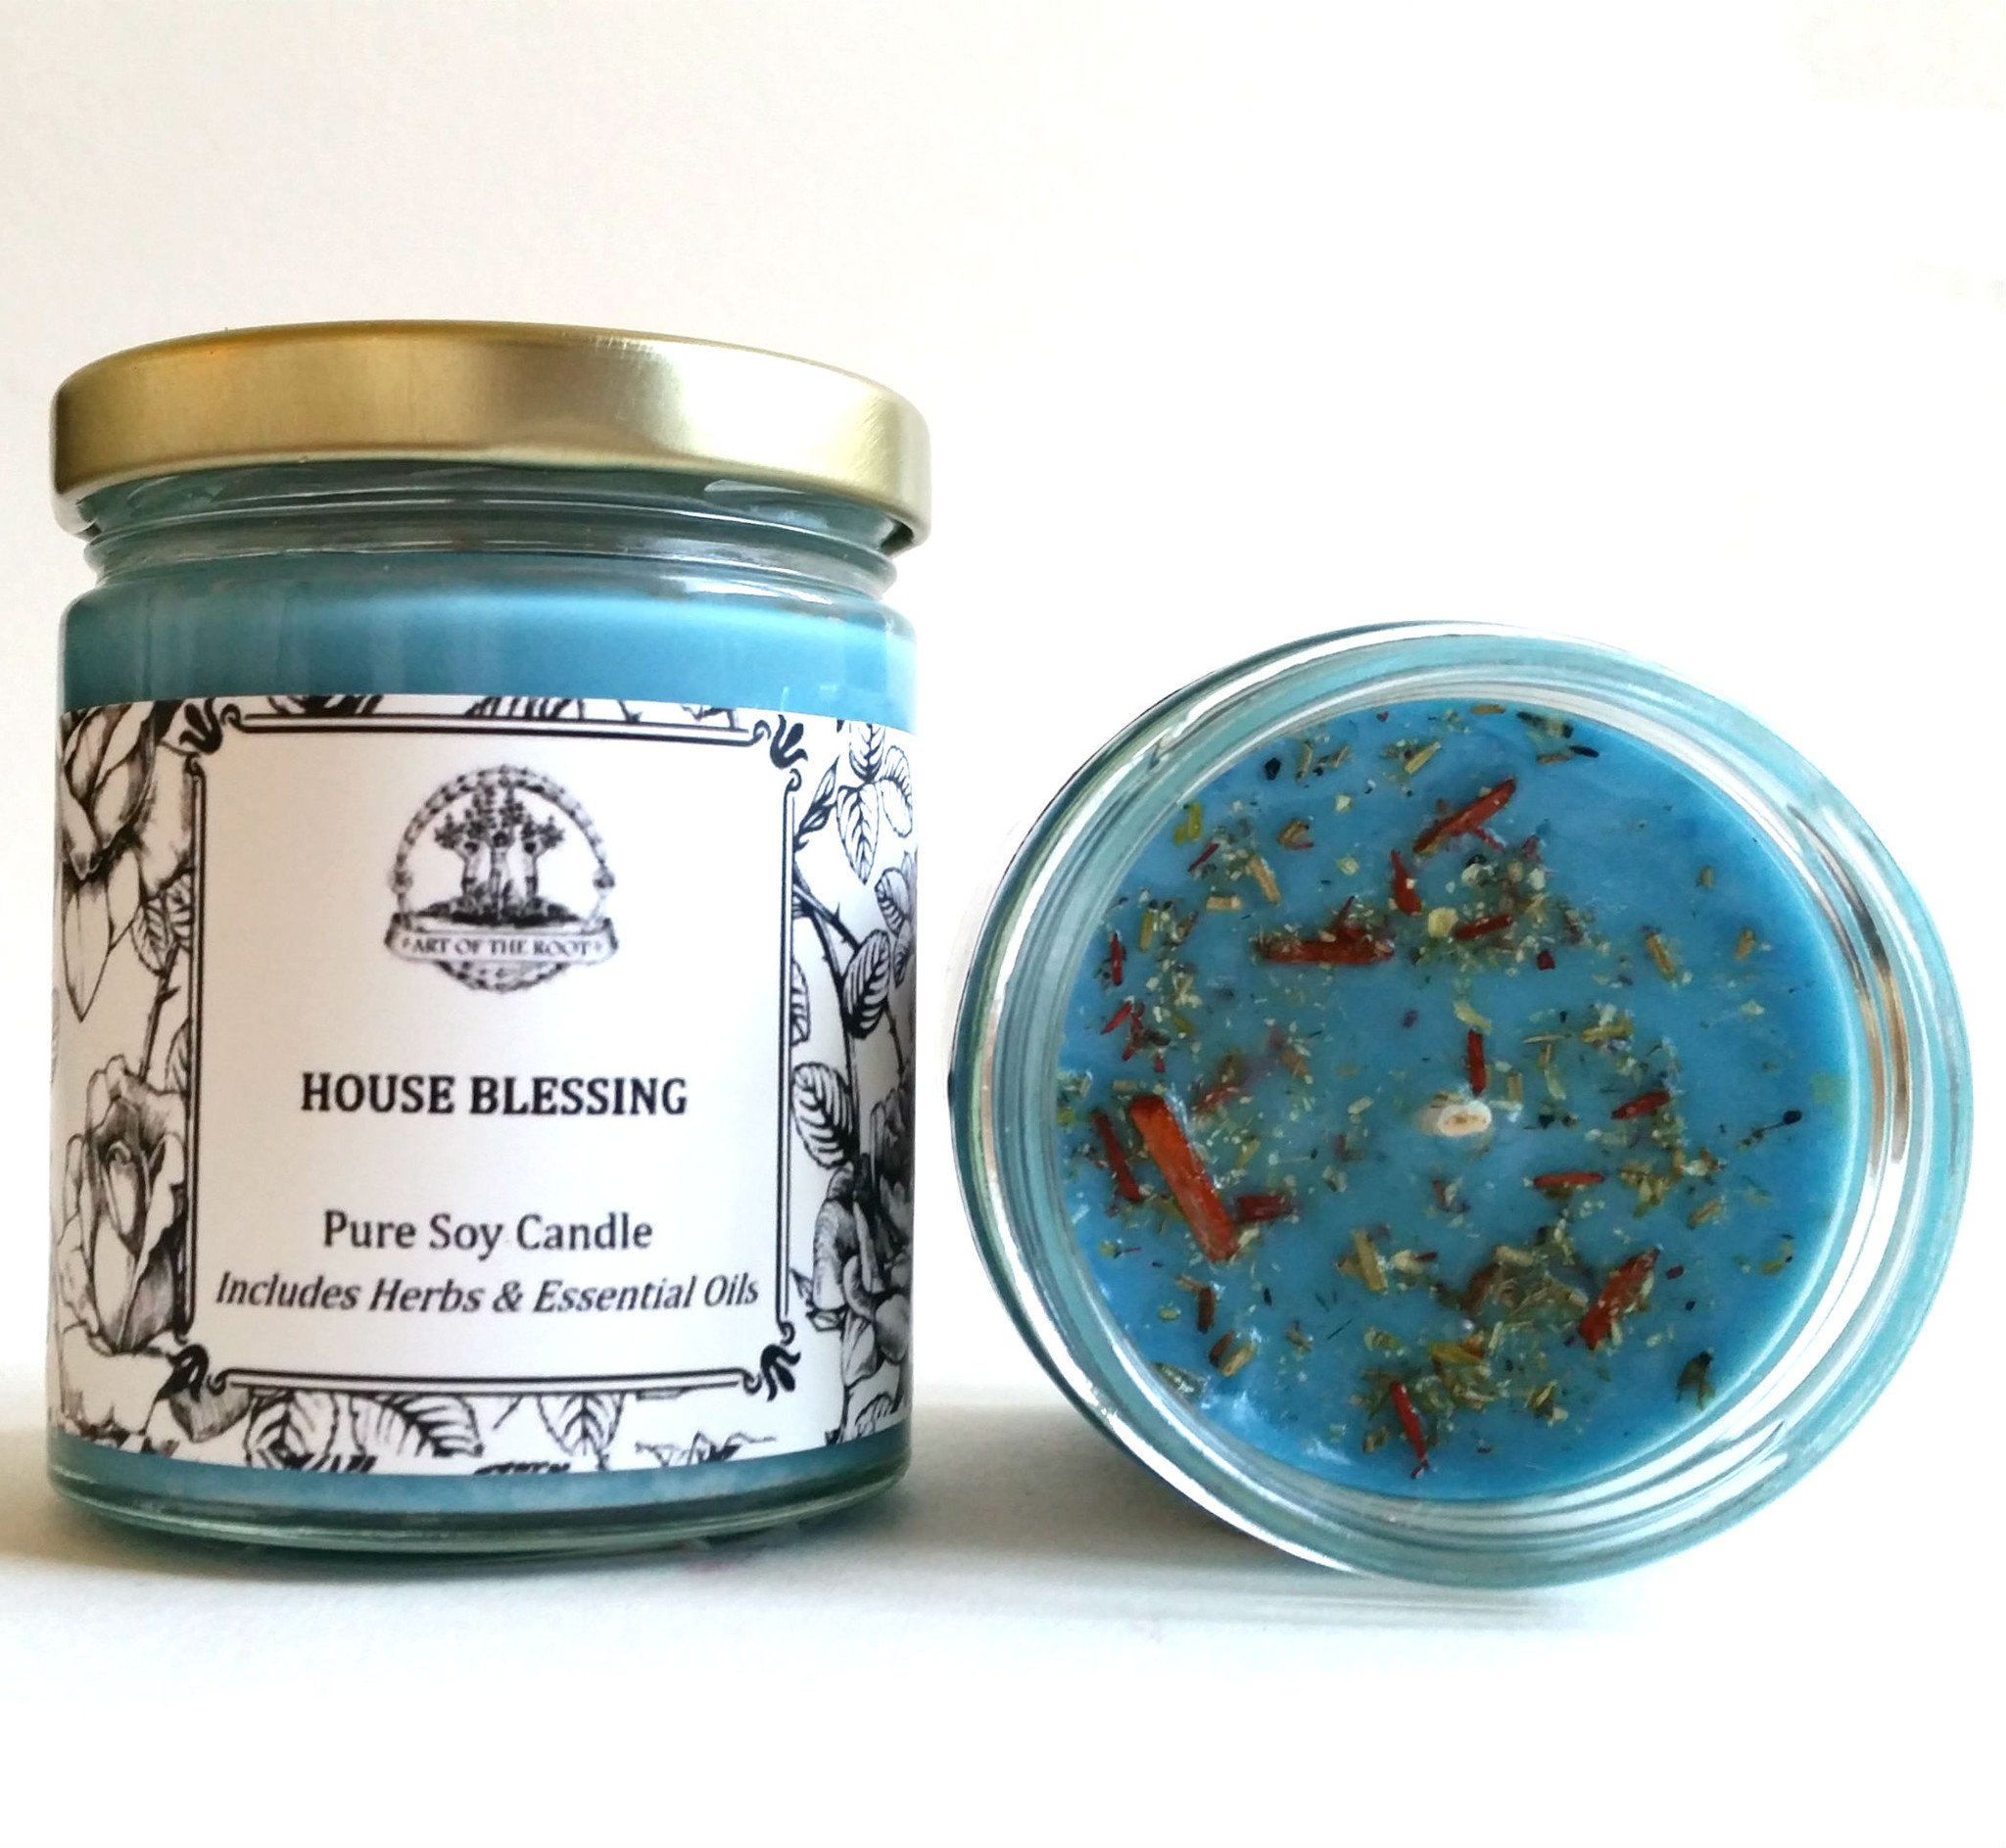 House_Blessing_Soy_Candle_Spells_Wiccan.jpg